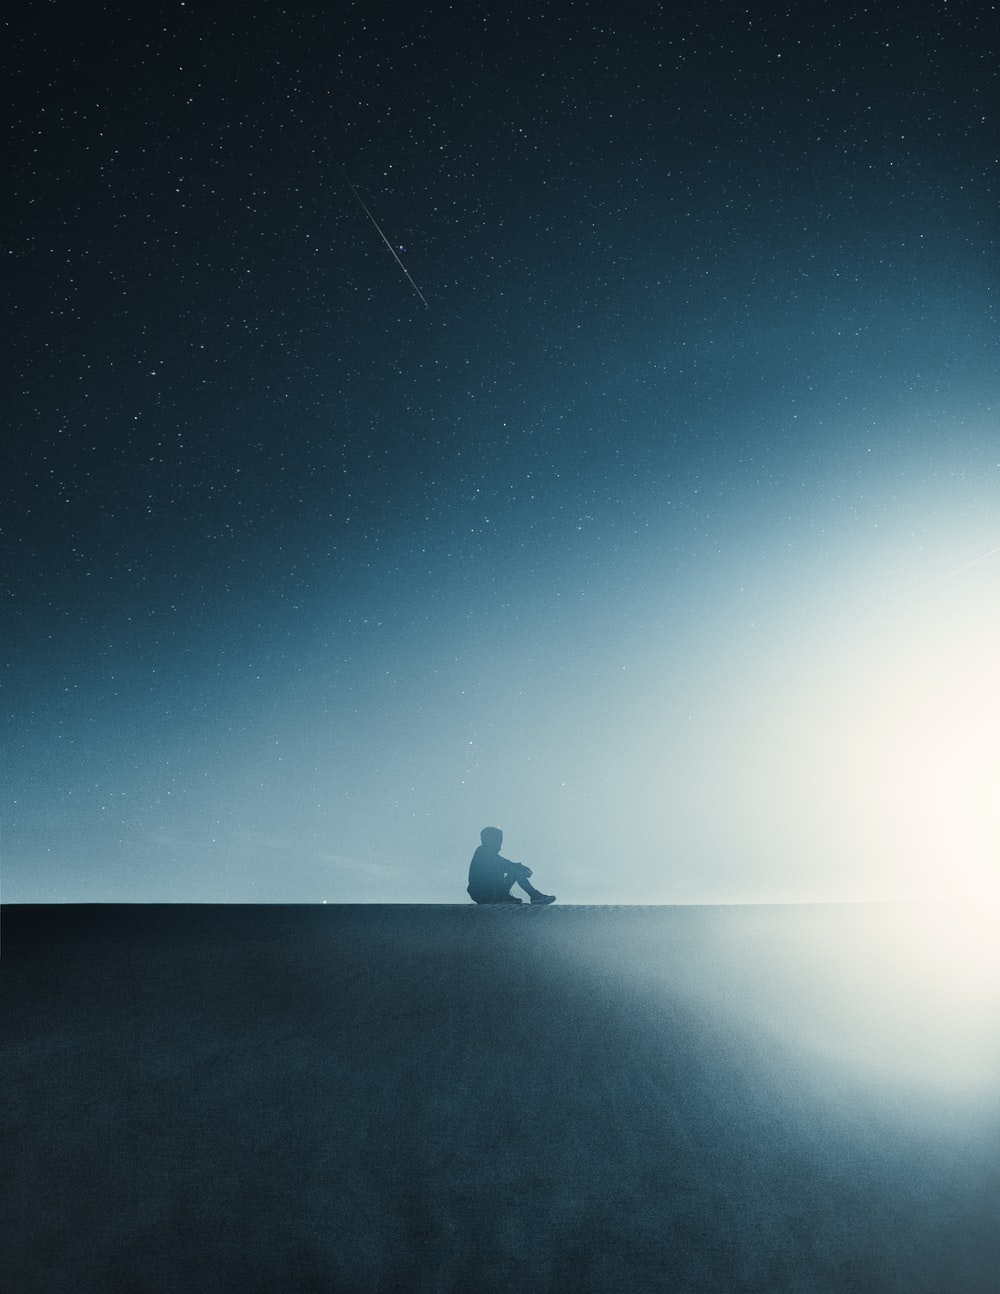 silhouette of person sitting on rock under starry night